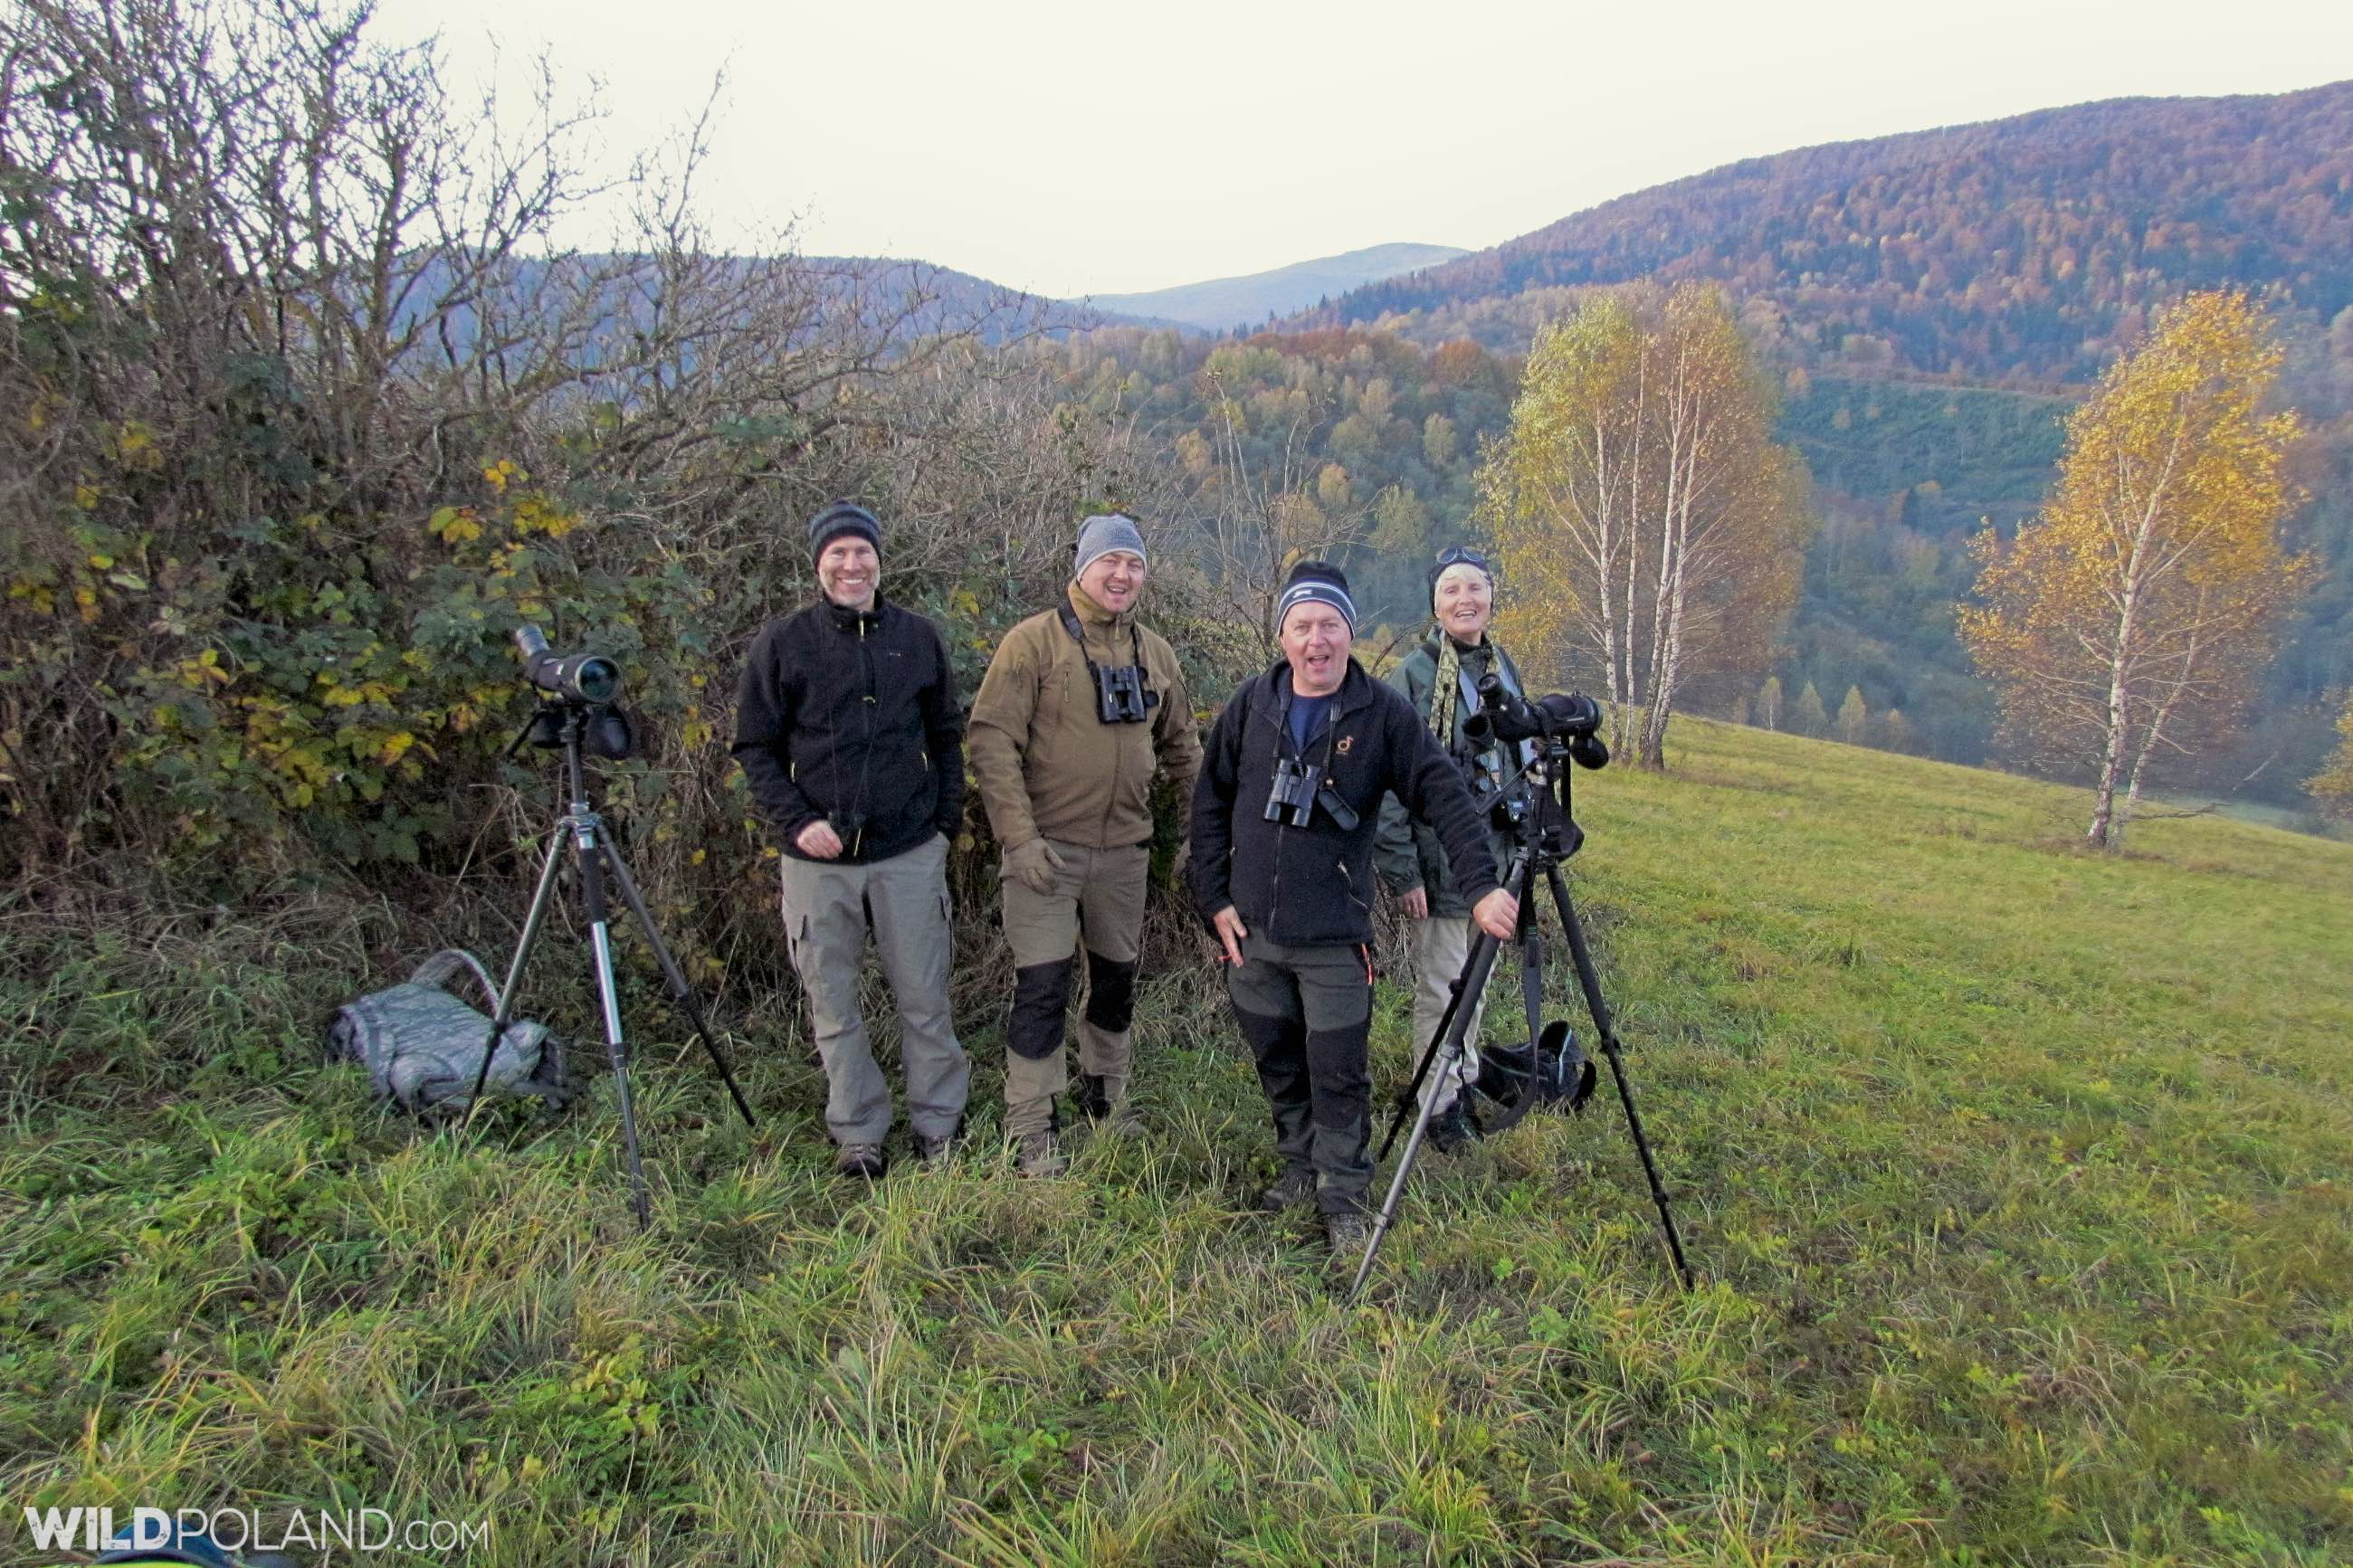 Our happy group from Switzerland, Australia and UK - a moment after watching a pack of 14 Wolves!